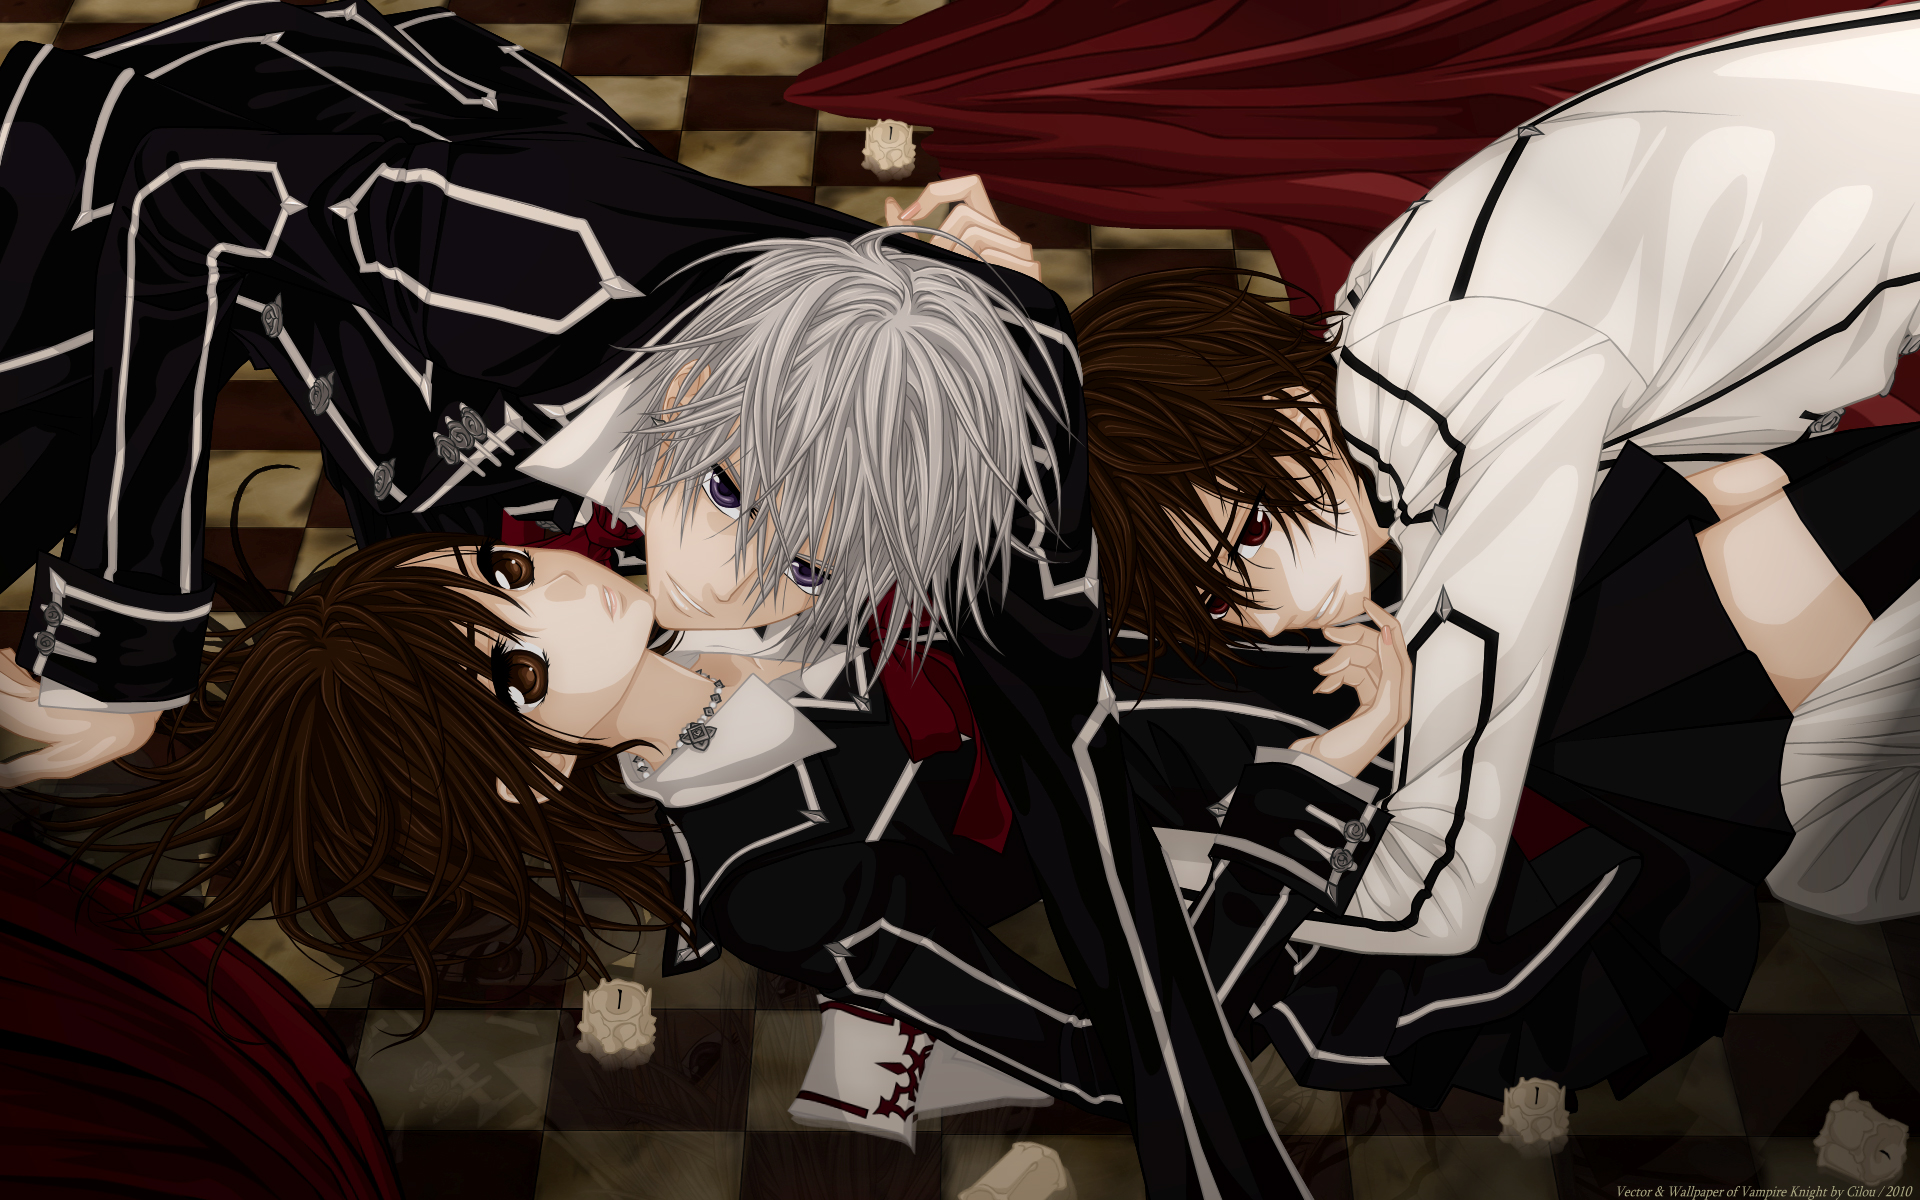 Vampire Love Hd Wallpaper : Vampire Knight - Matsuri Hino - Wallpaper #306646 - Zerochan Anime Image Board